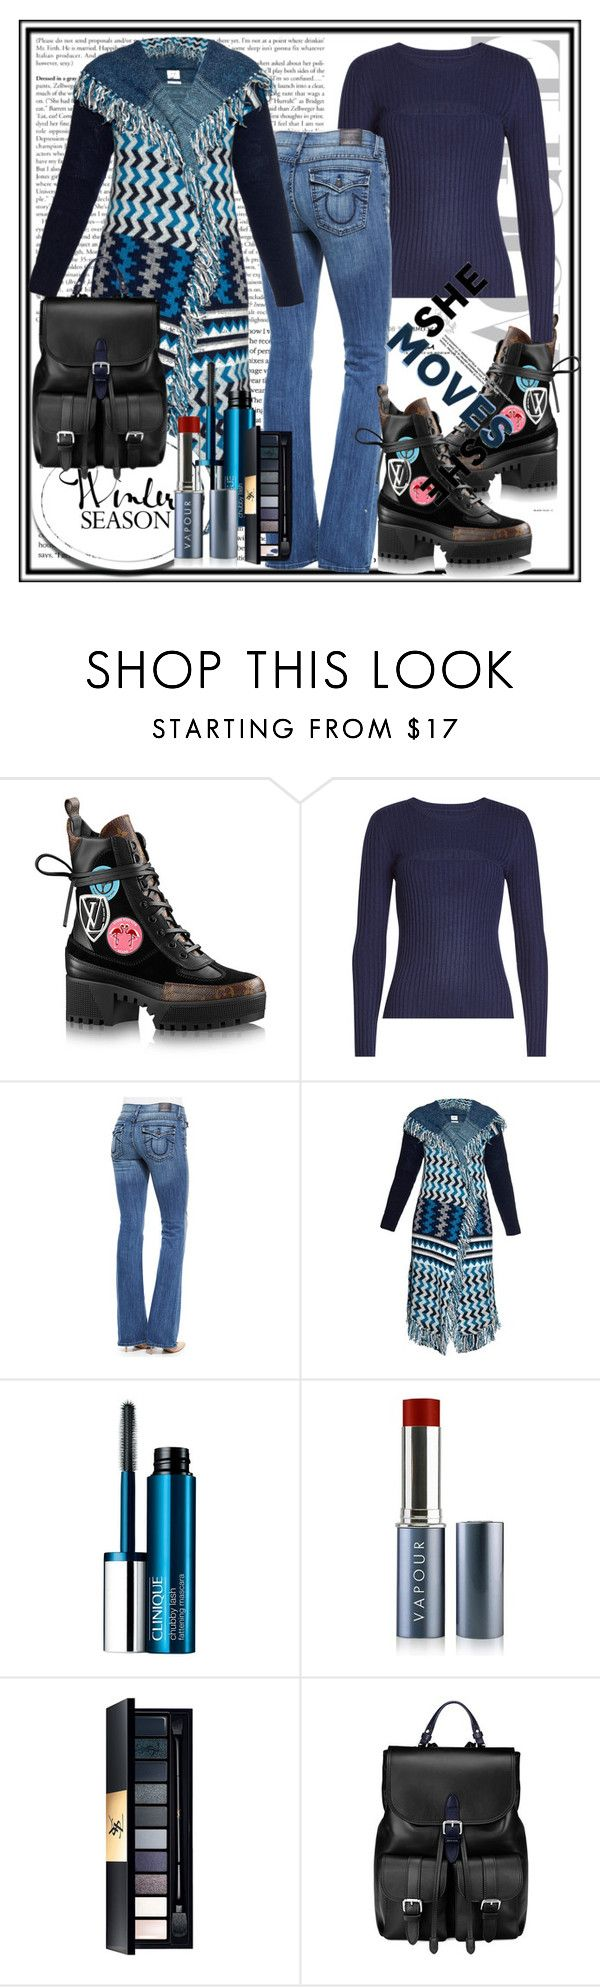 """Hooded Cardigan"" by stars-5 ❤ liked on Polyvore featuring Frame, True Religion, Banjo & Matilda, Clinique, Vapour Organic Beauty and Aspinal of London"